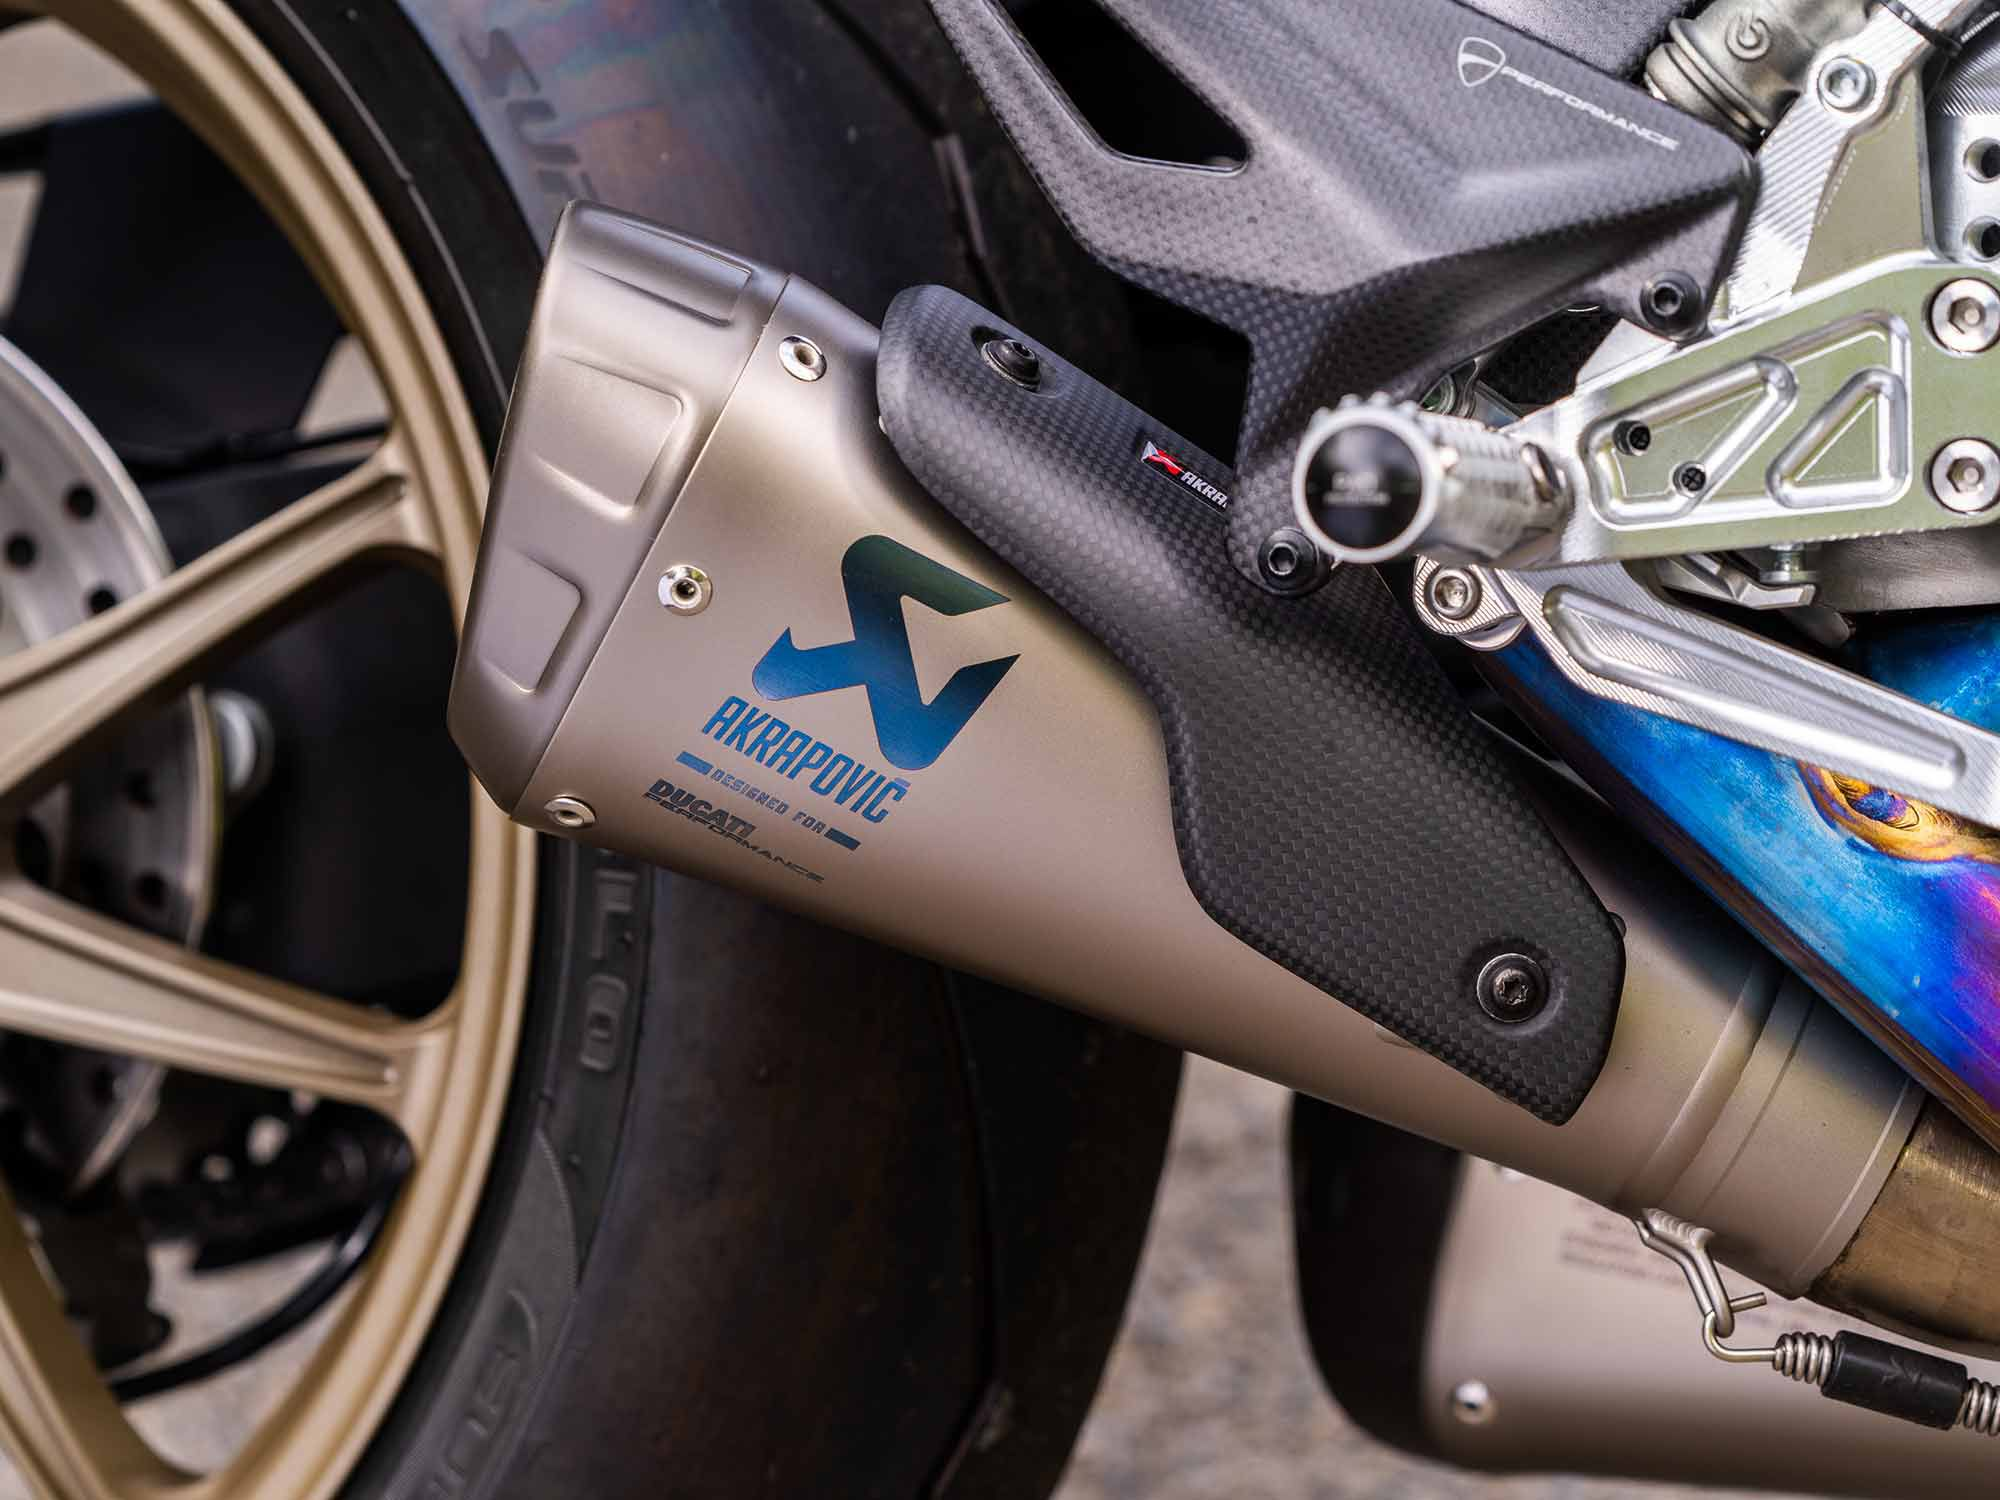 The sound that emits from this twin-muffler Akrapovič titanium exhaust is pure ecstasy. It is a tad loud, however, for use in urban areas.